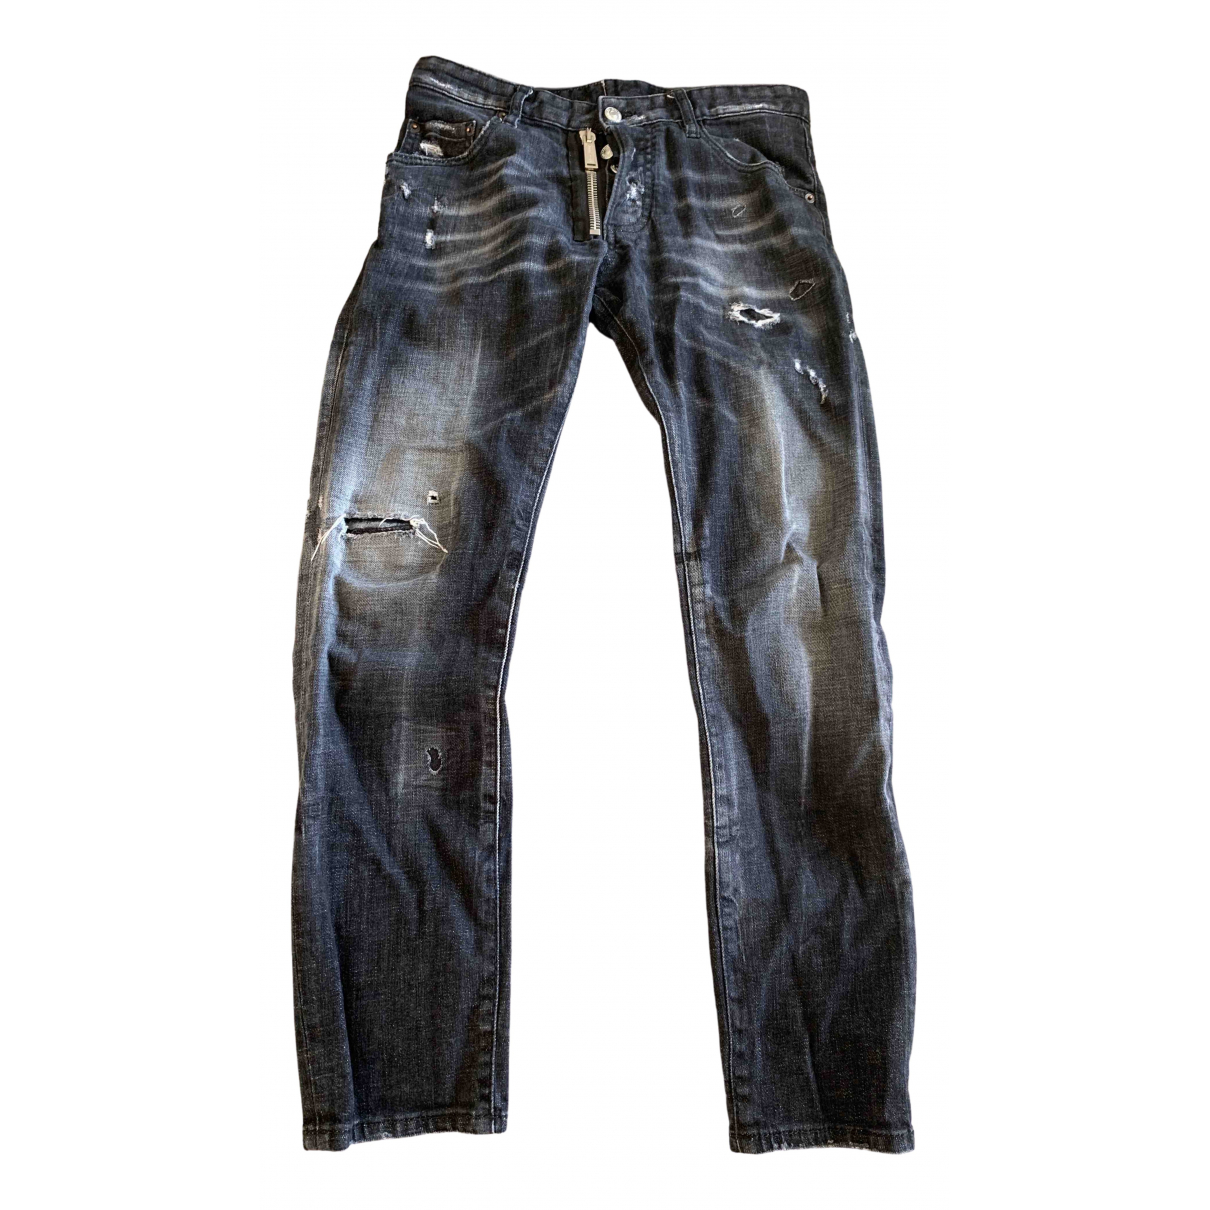 Dsquared2 \N Black Cotton - elasthane Jeans for Men 38 FR